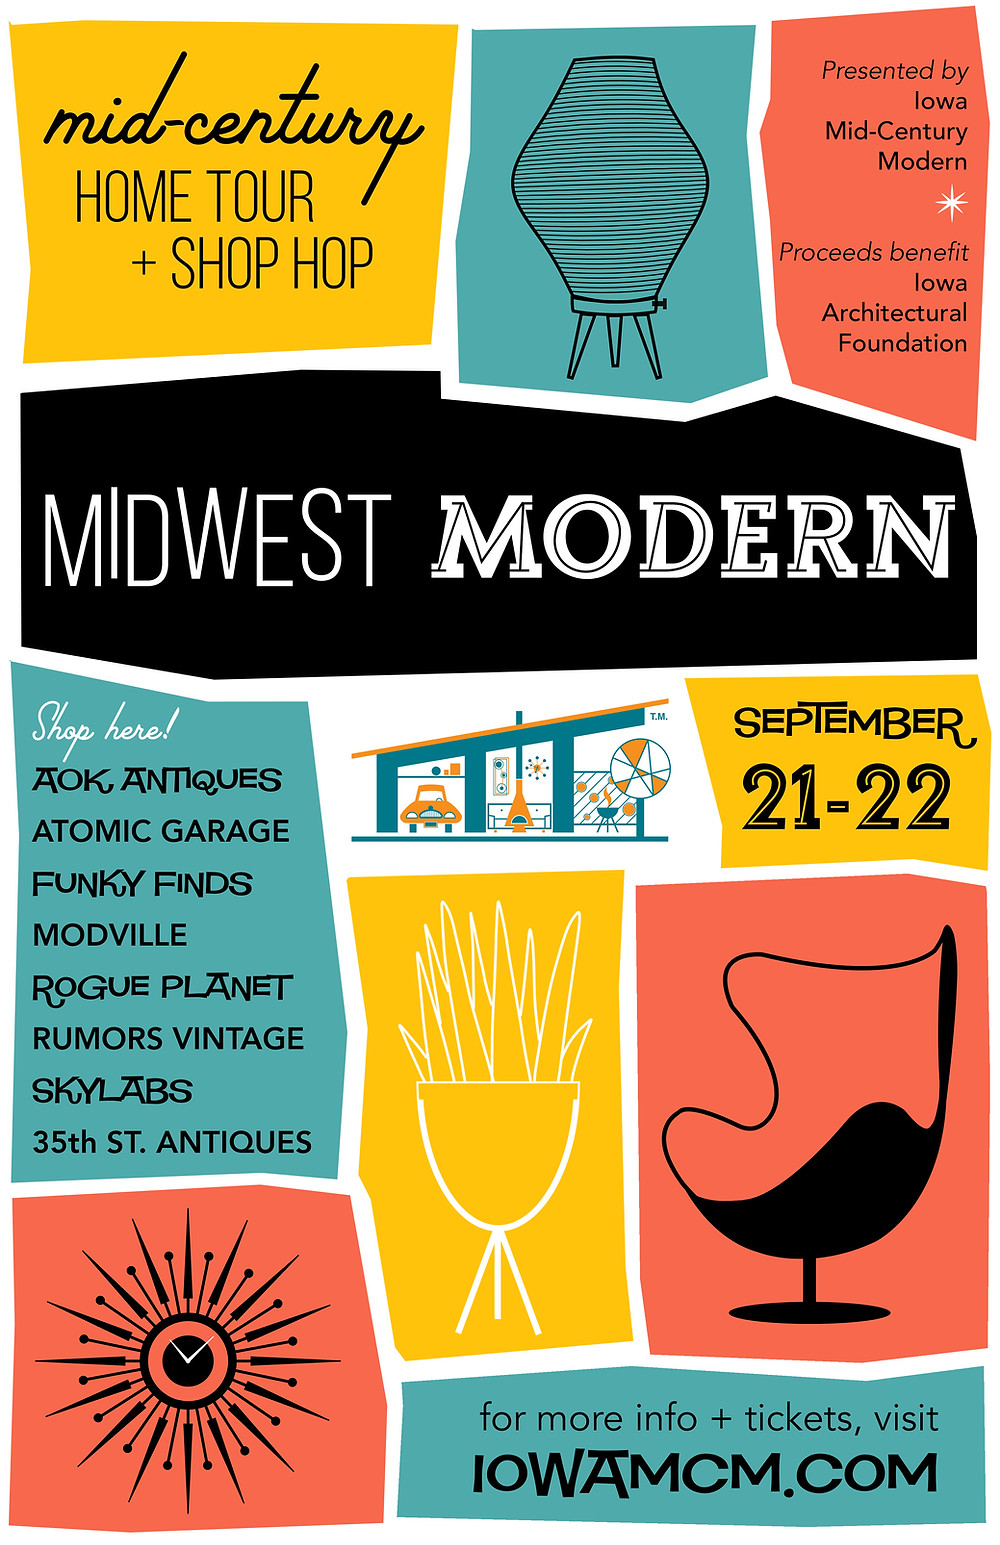 Midwest Modern 2019